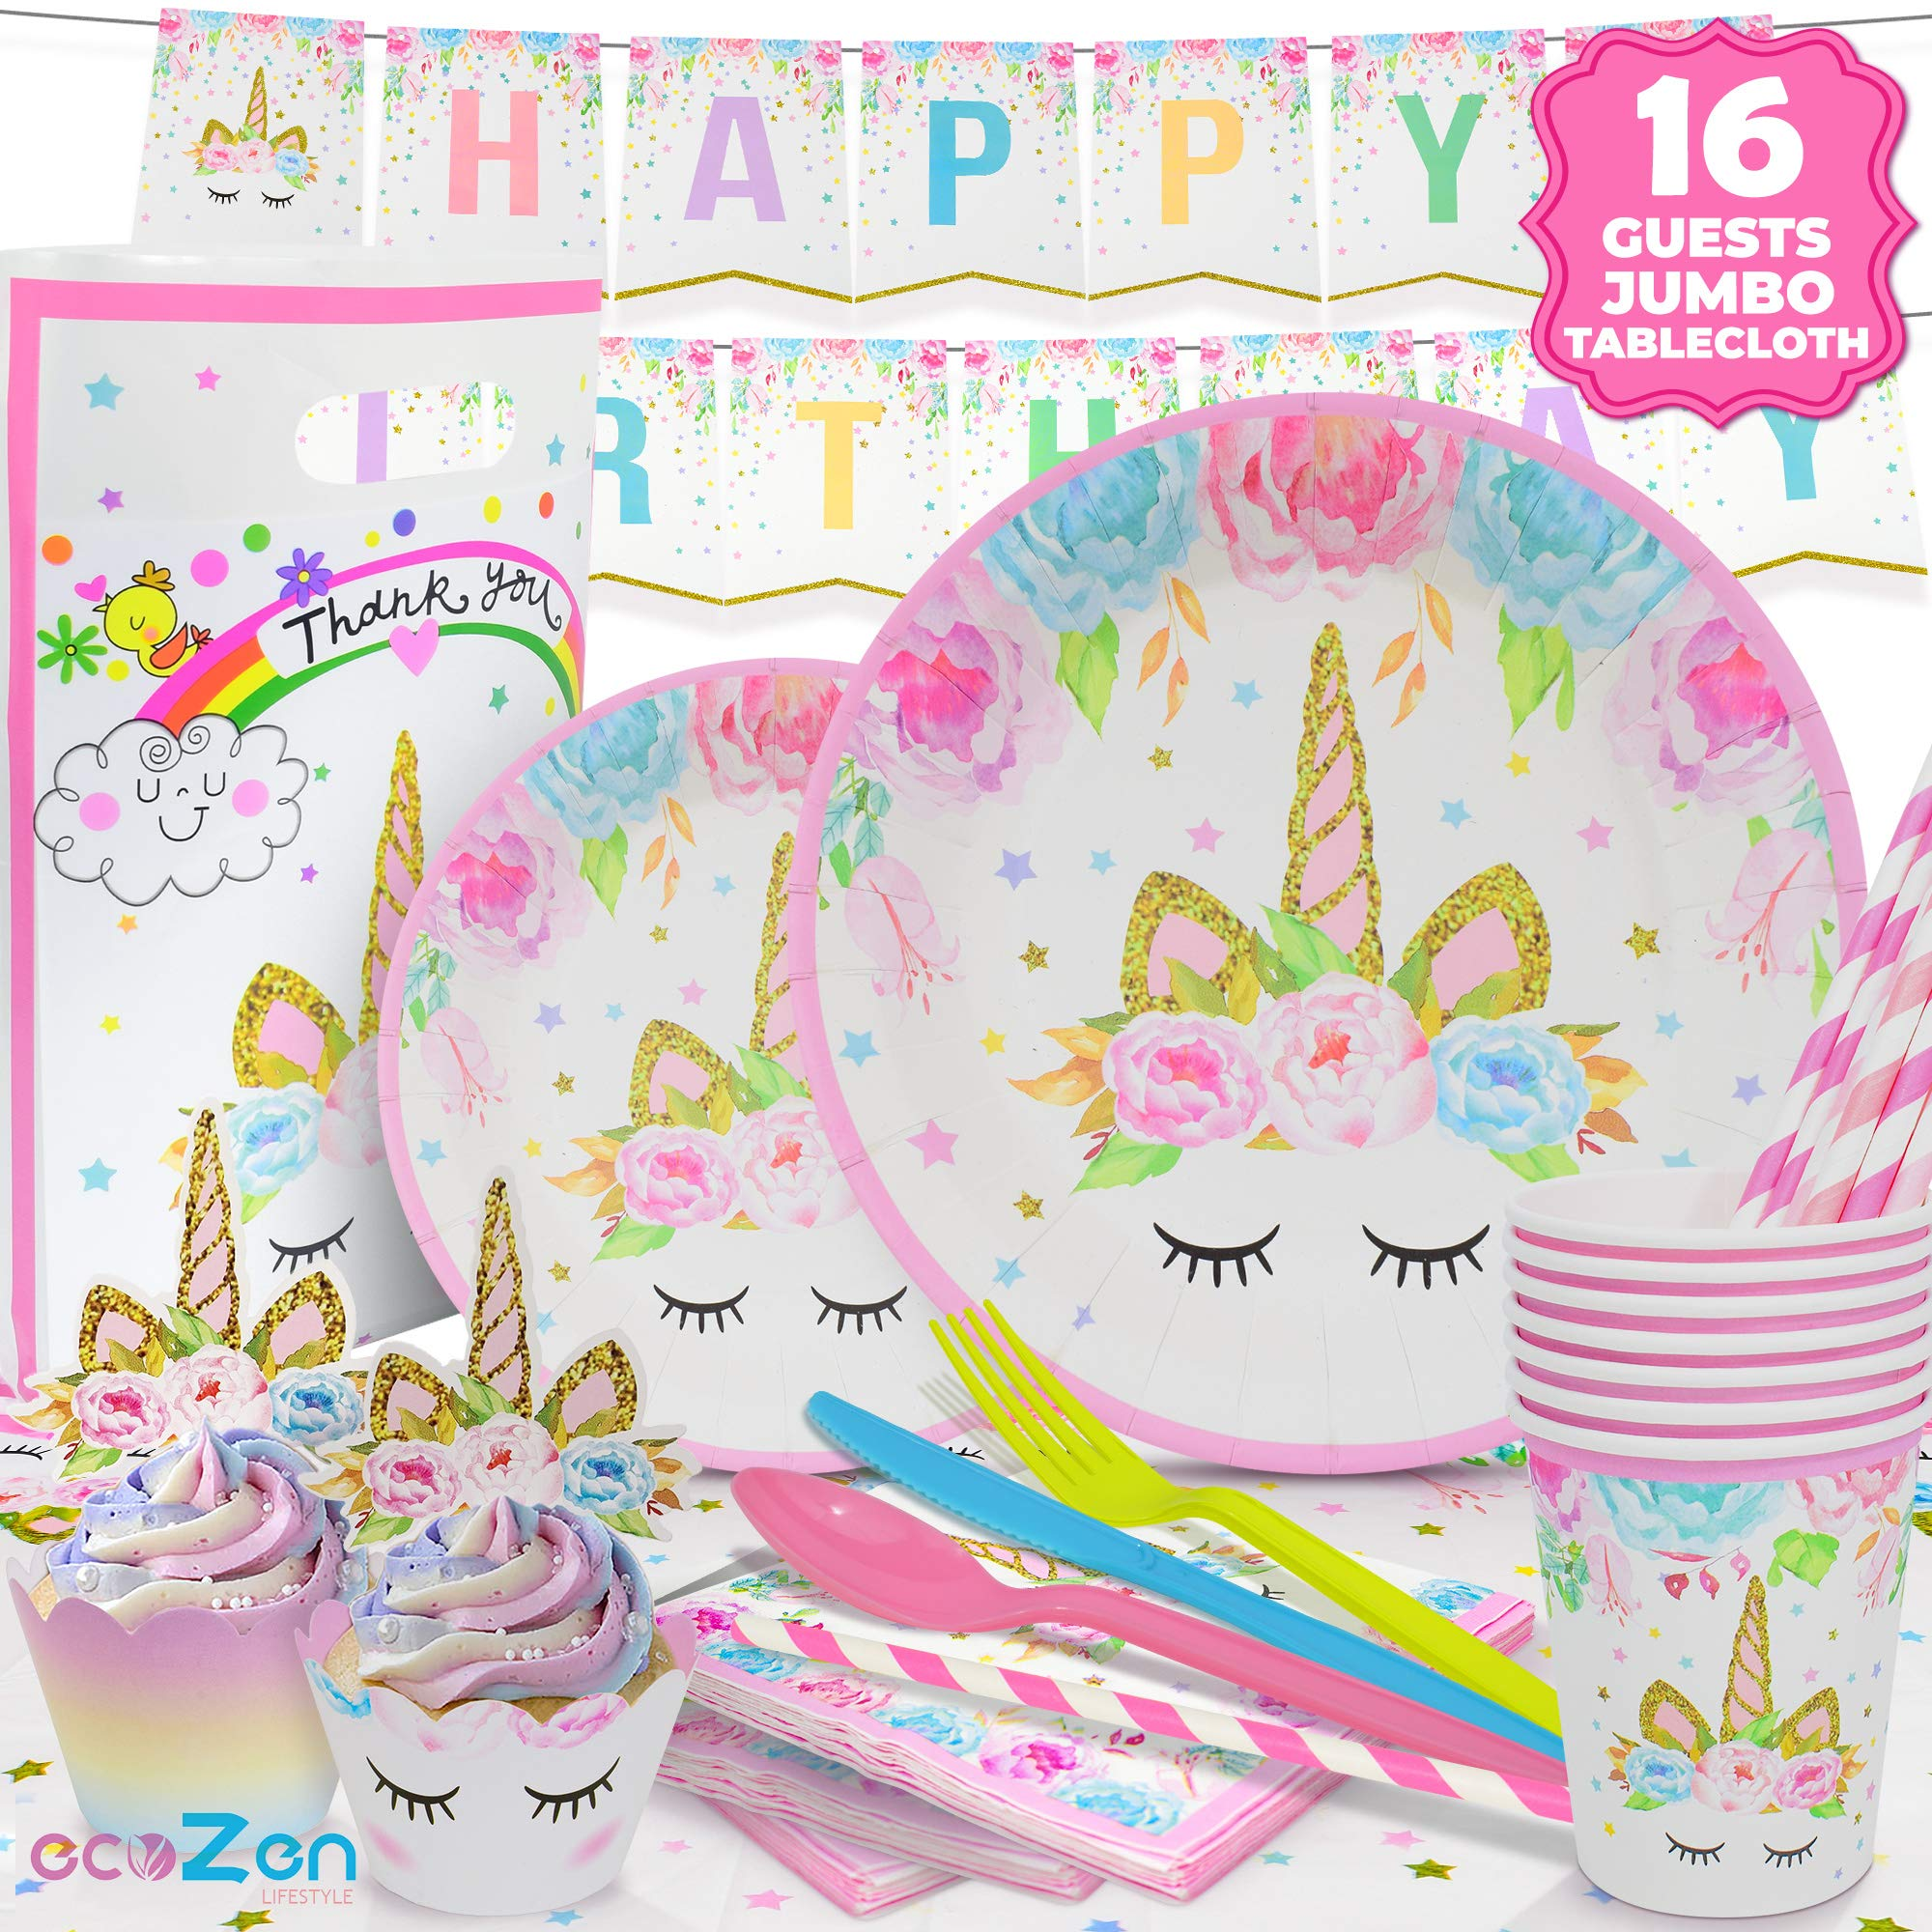 ecoZen Lifestyle Ultimate Unicorn Party Supplies and Plates for Birthday Party | Best Value Unicorn Decorations Set That Give to Make a Long Lasting Magical Memorable Party by ecoZen Lifestyle